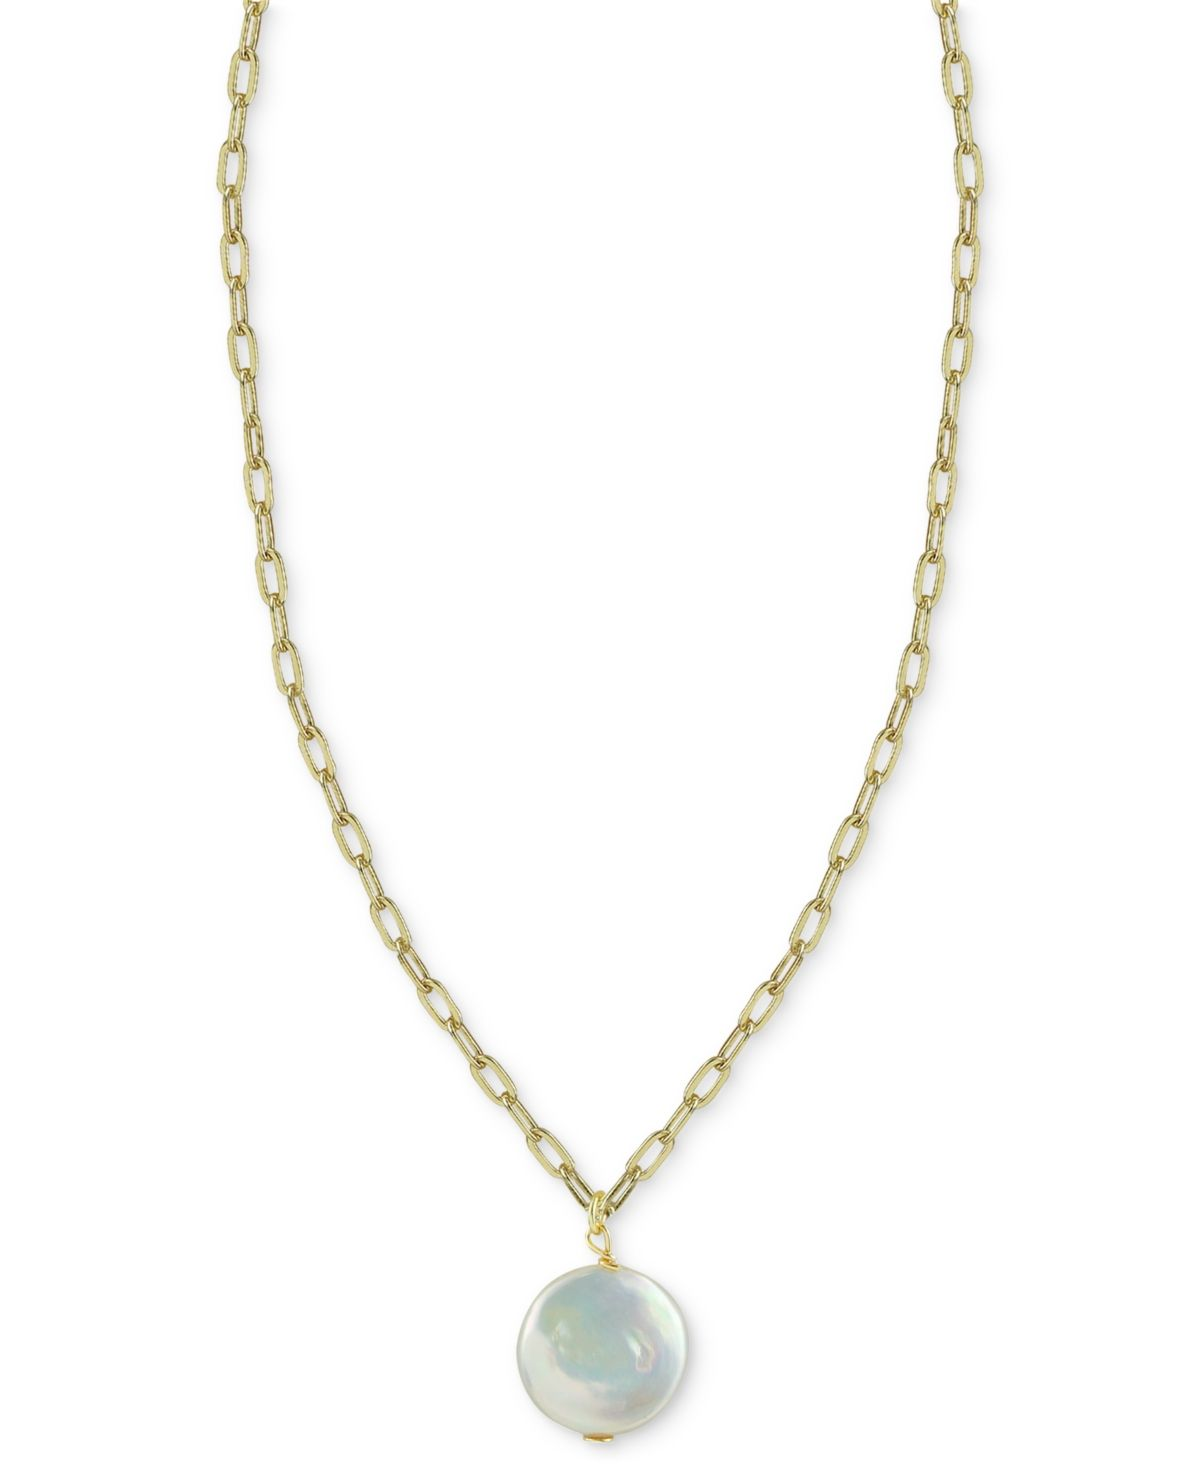 Bring a sense of sophistication to your fave outfits with this dazzling cultured freshwater baroque pearl pendant necklace, from Argento Vivo.